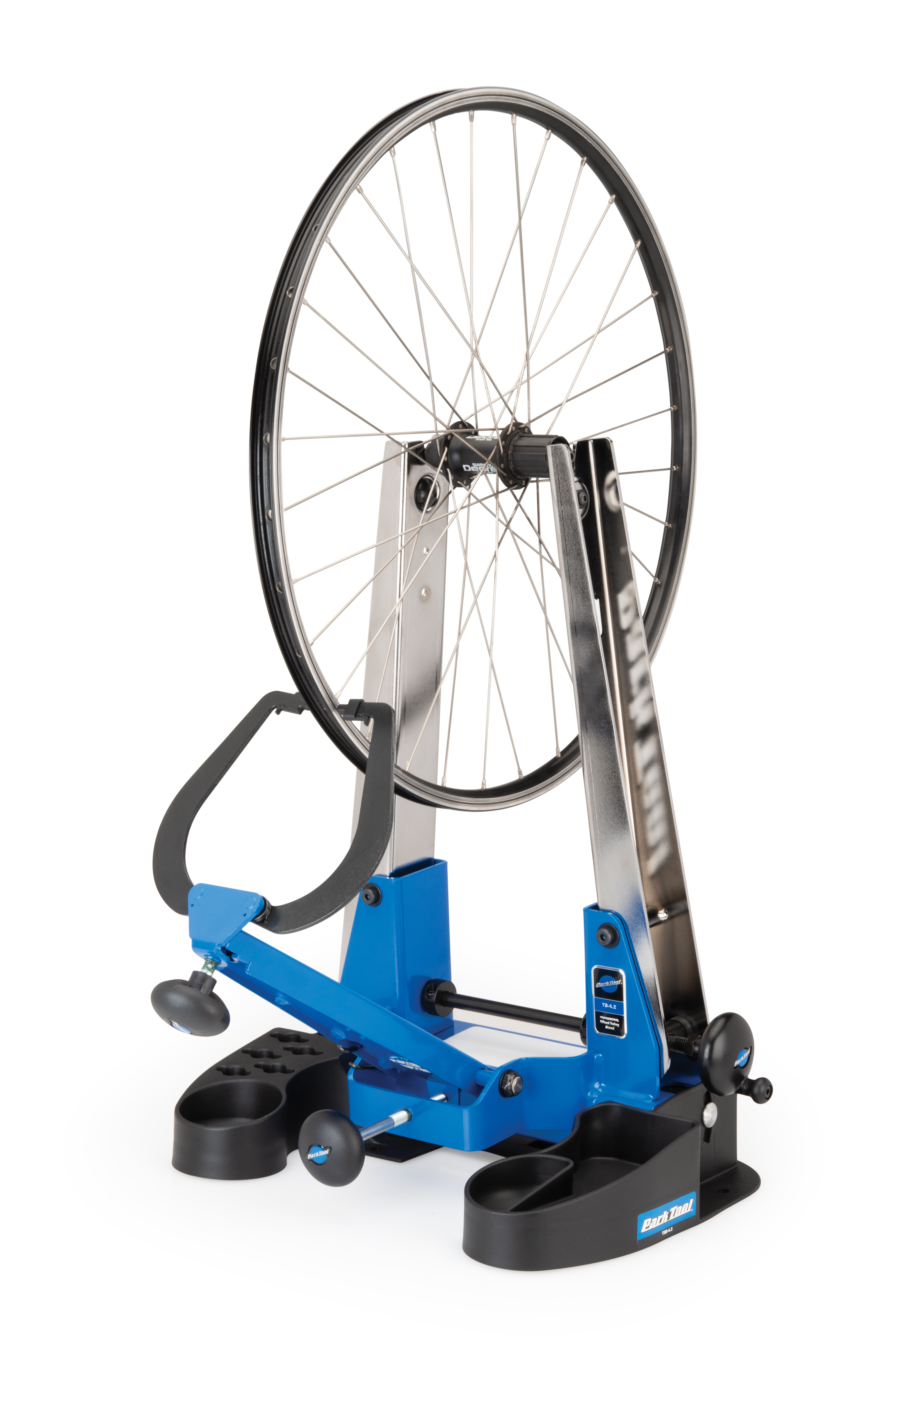 Bike wheel in a Park Tool Truing Stand Tilting Base, enlarged